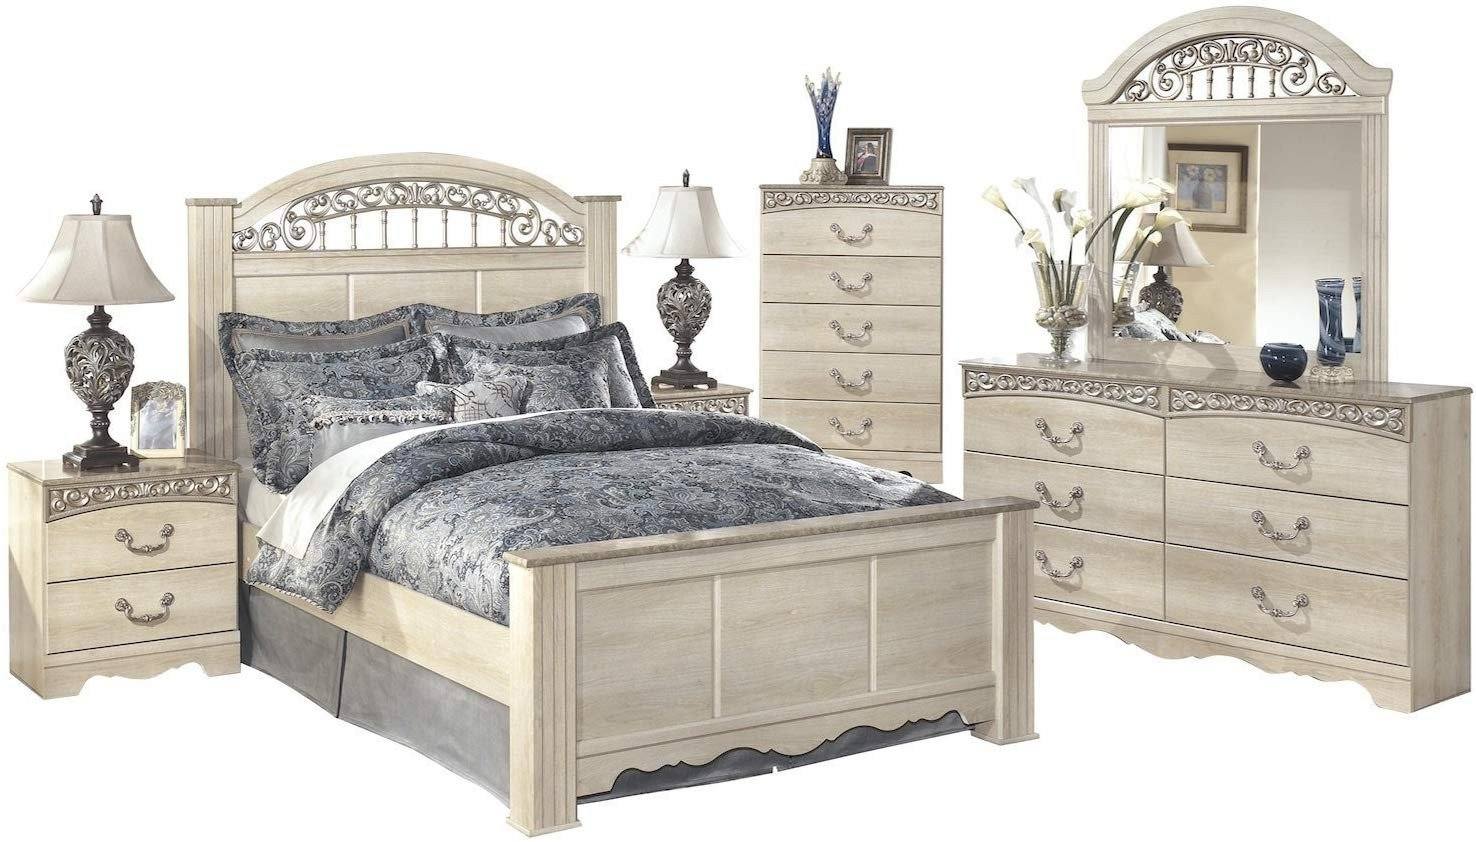 Ashley Catalina Bedroom Set Lovely Catalina 6 Pc Queen Poster Bedroom Set W 2 Nightstand & Chest ashley In Vintage Ivory